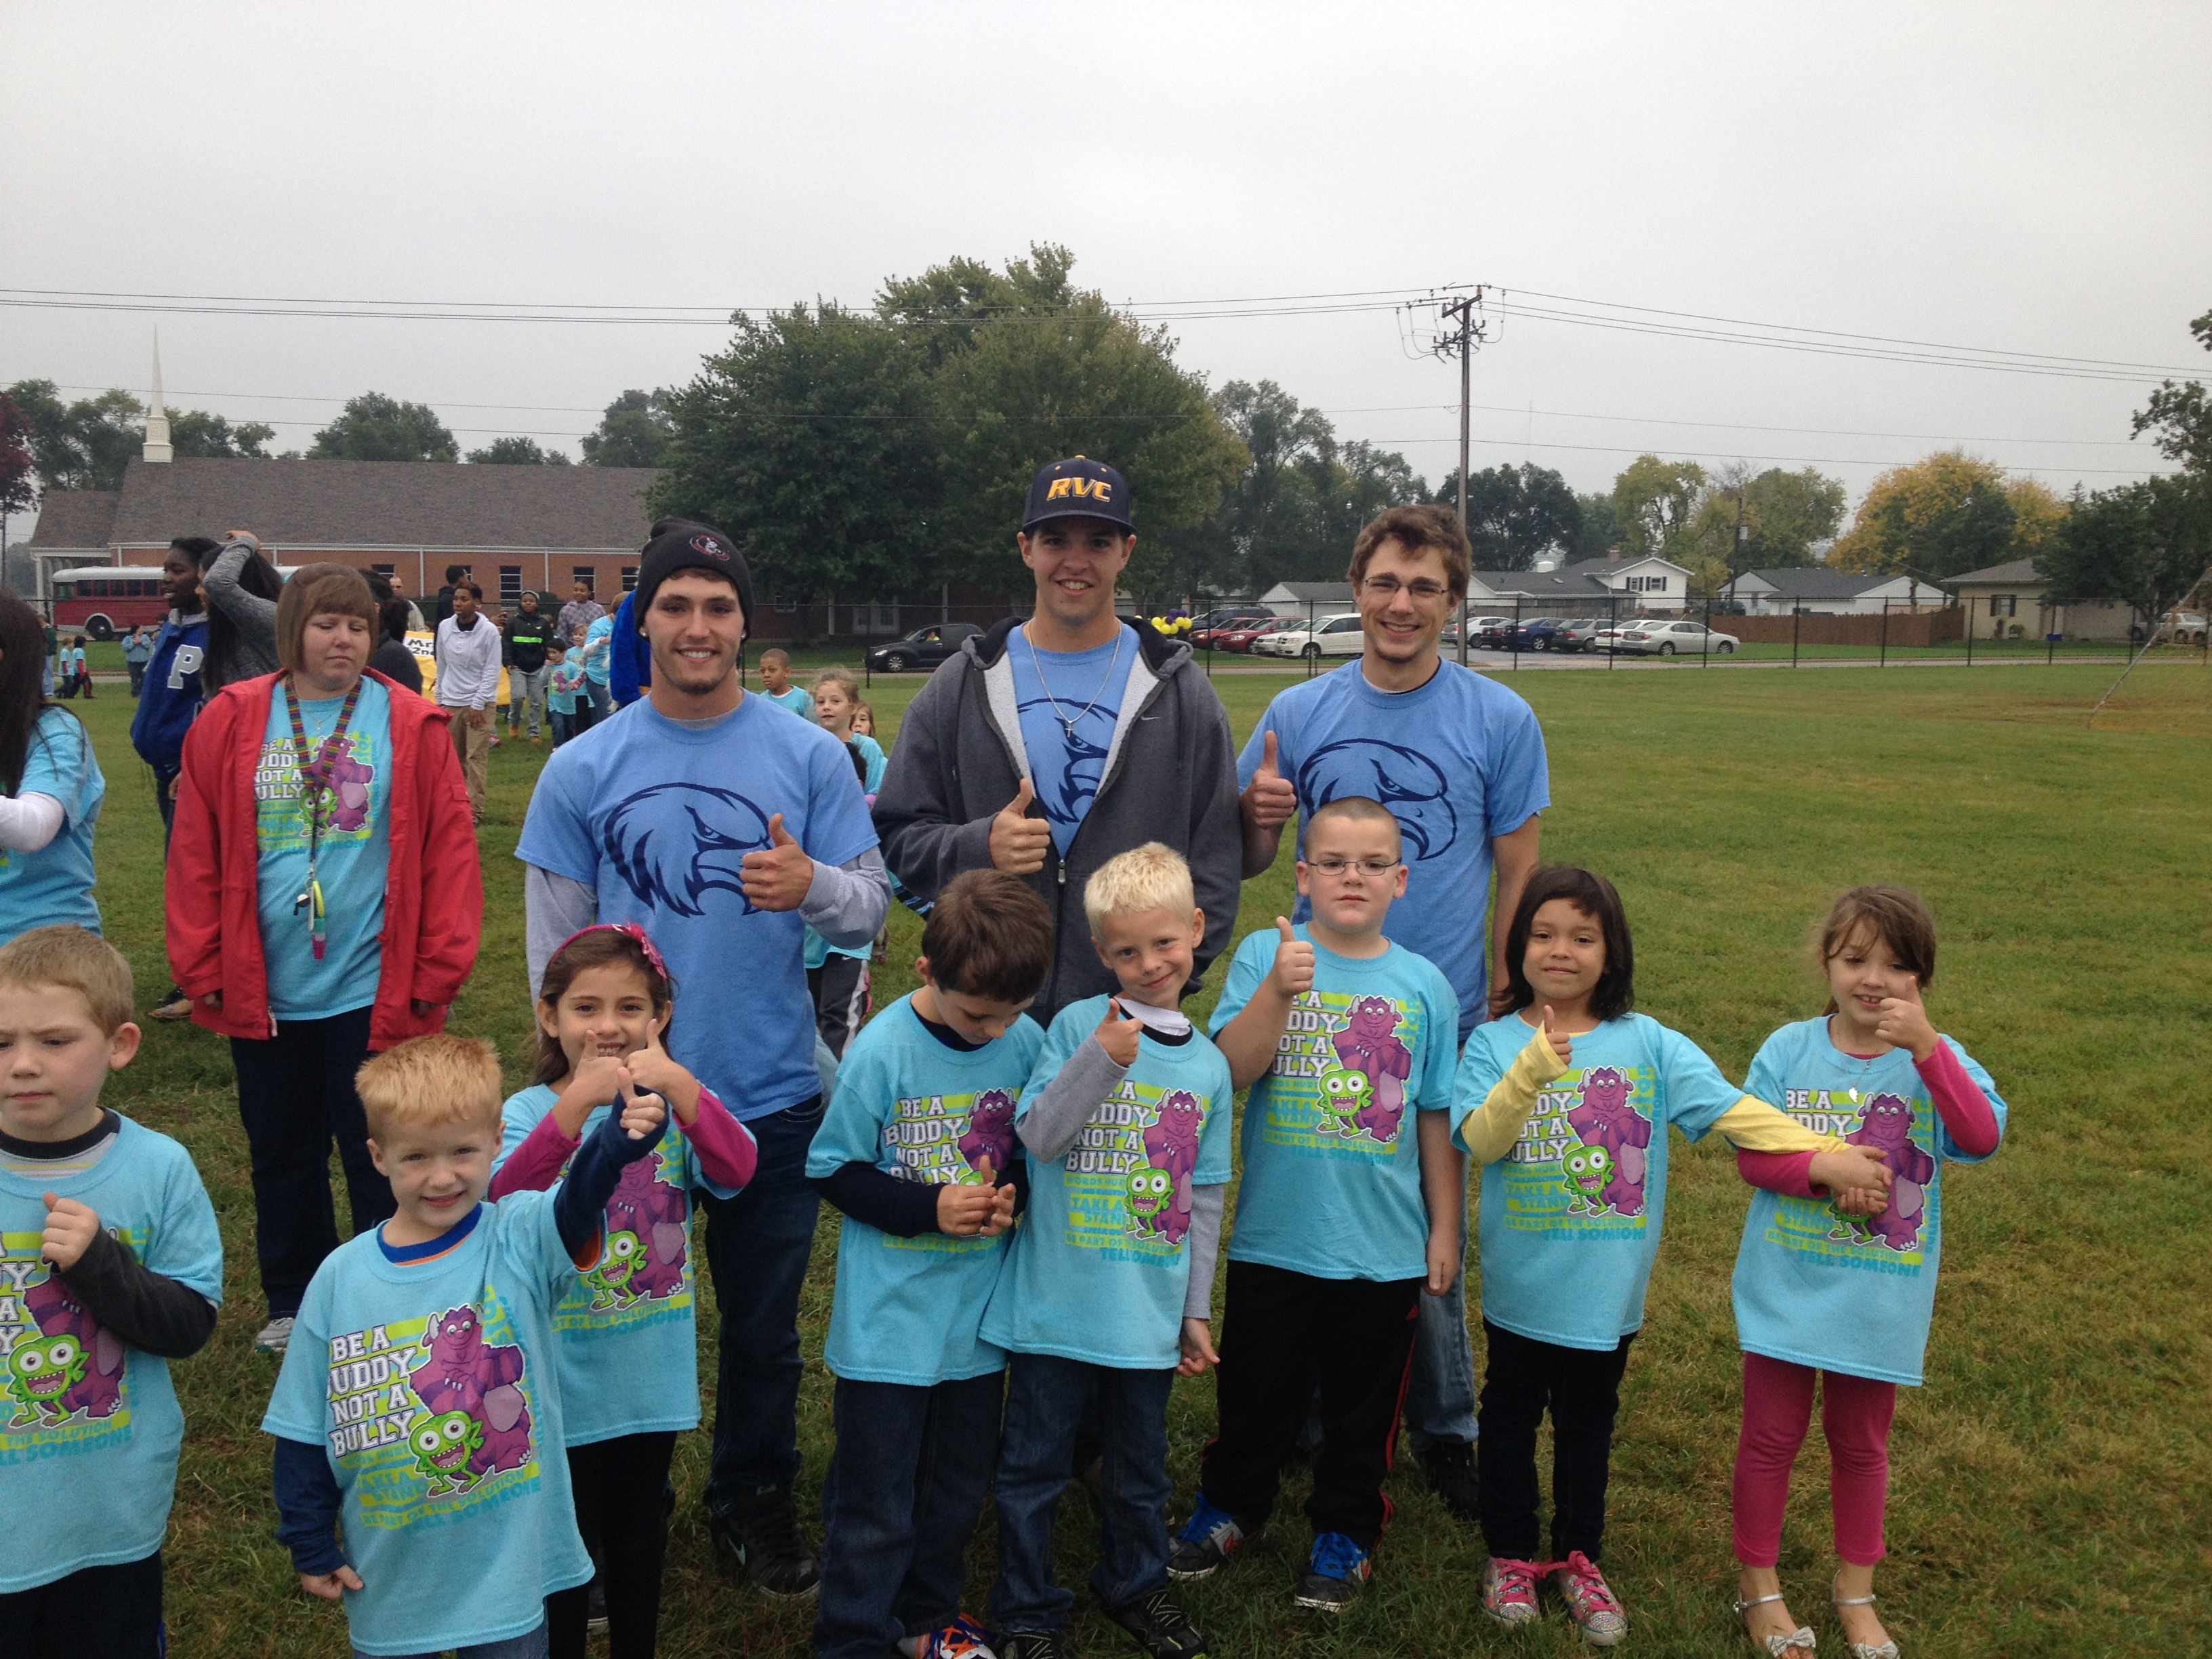 RVC student-athletes (back row, left to right): Sean Wight, Daxx Spera, Casey Williams, along with Windsor Elementary students.